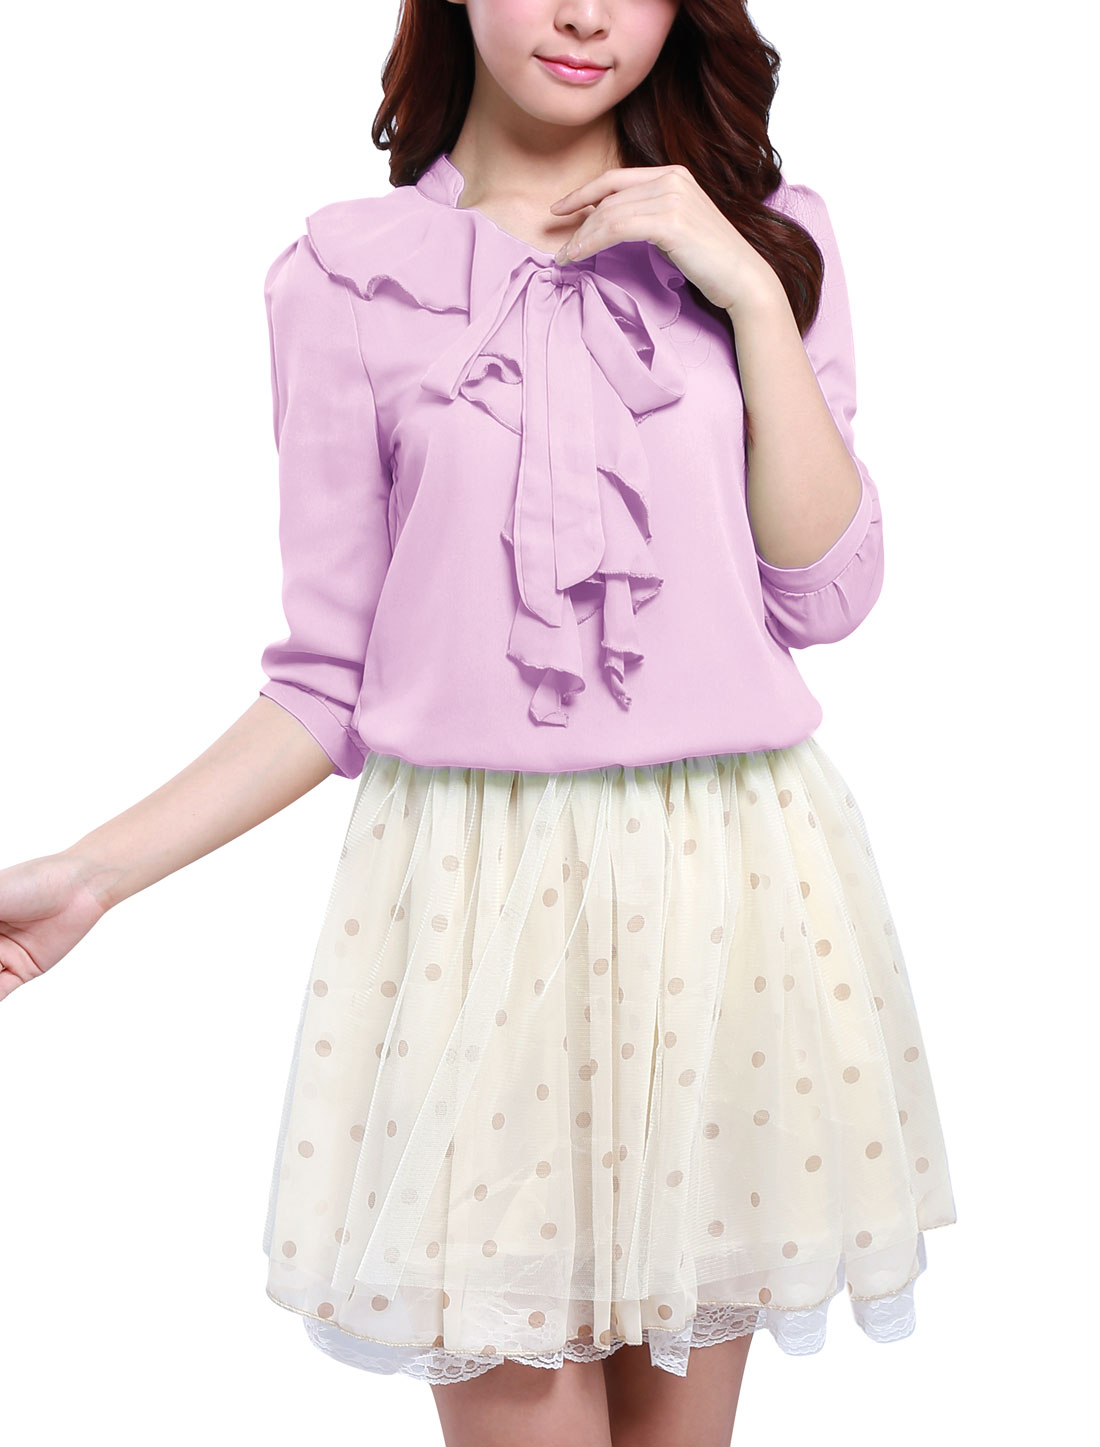 Lady Pale Purple Stand Colalr Flouncing Self Tie Front Blouse XS